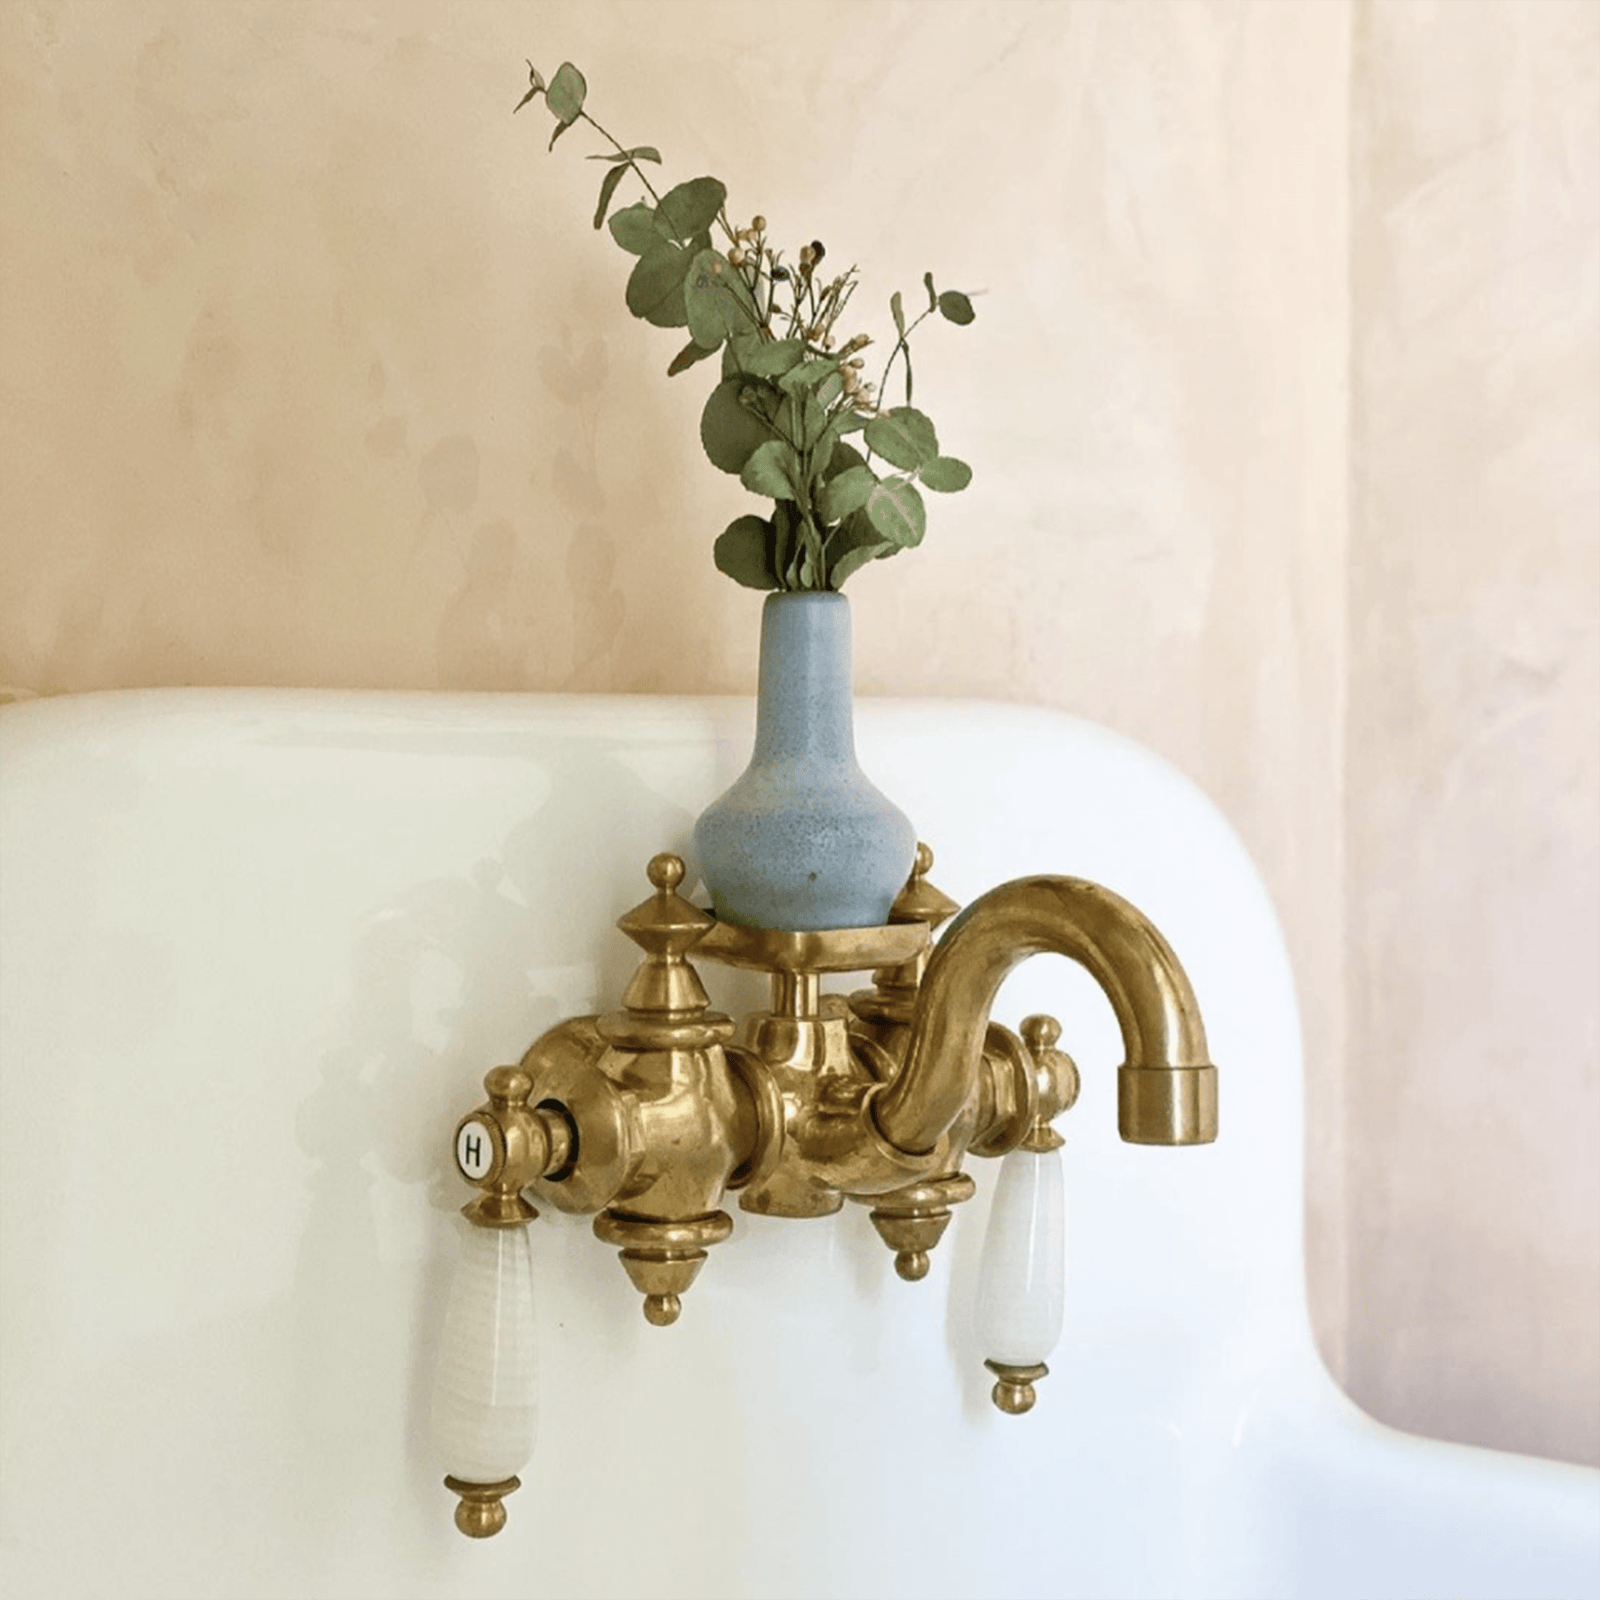 WatermarkFixtures Bath Porcelain Farm Sink with Non Lacquered Brass Montaigne Faucet